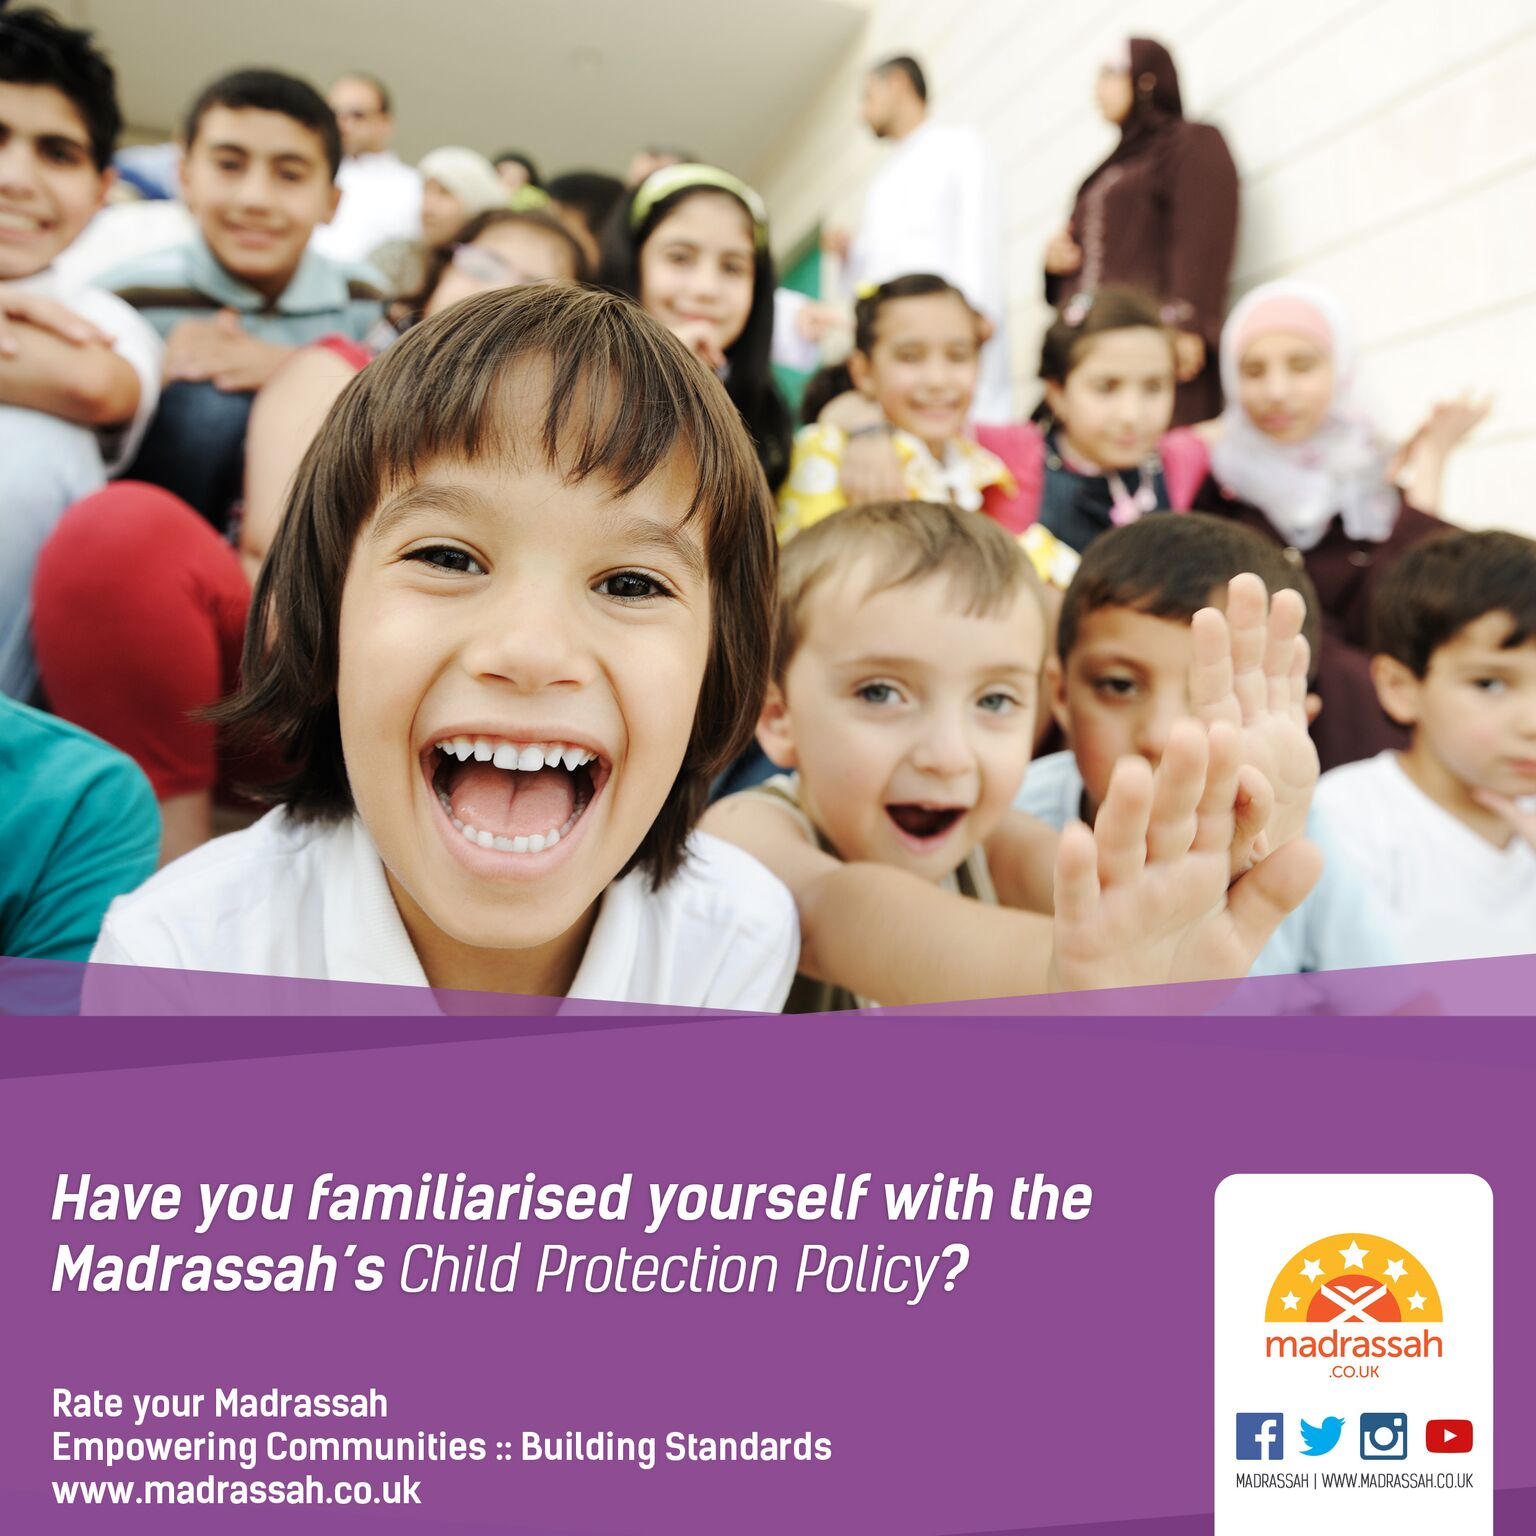 Have you familiarised yourself witht he Madrassahs Child Protection Policy